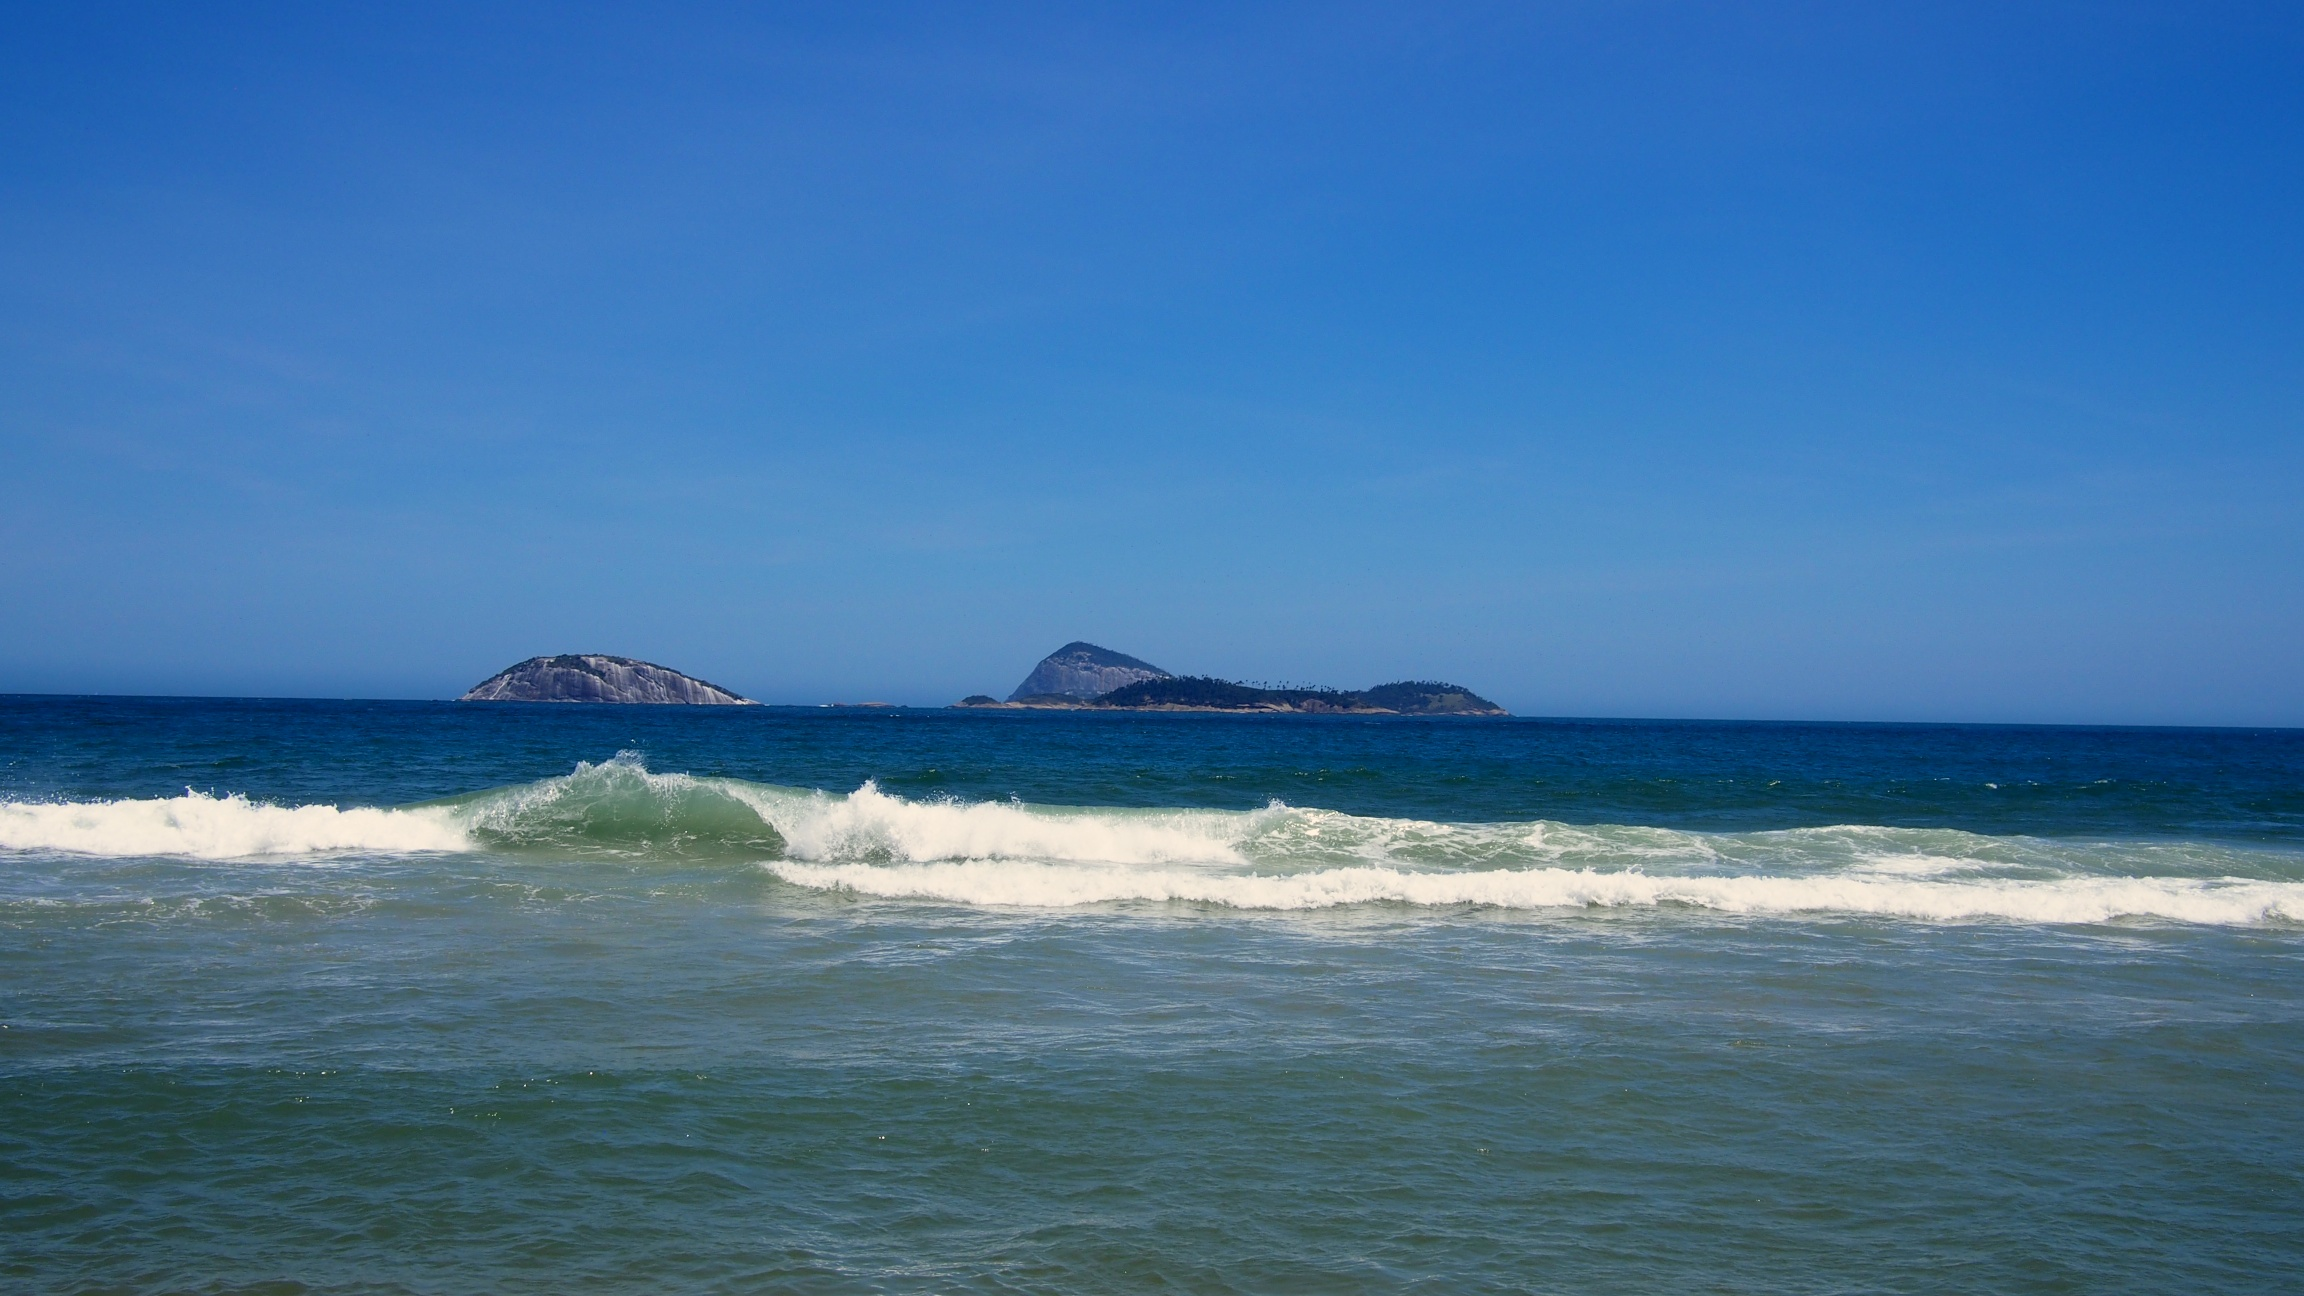 The view from Ipanema Beach